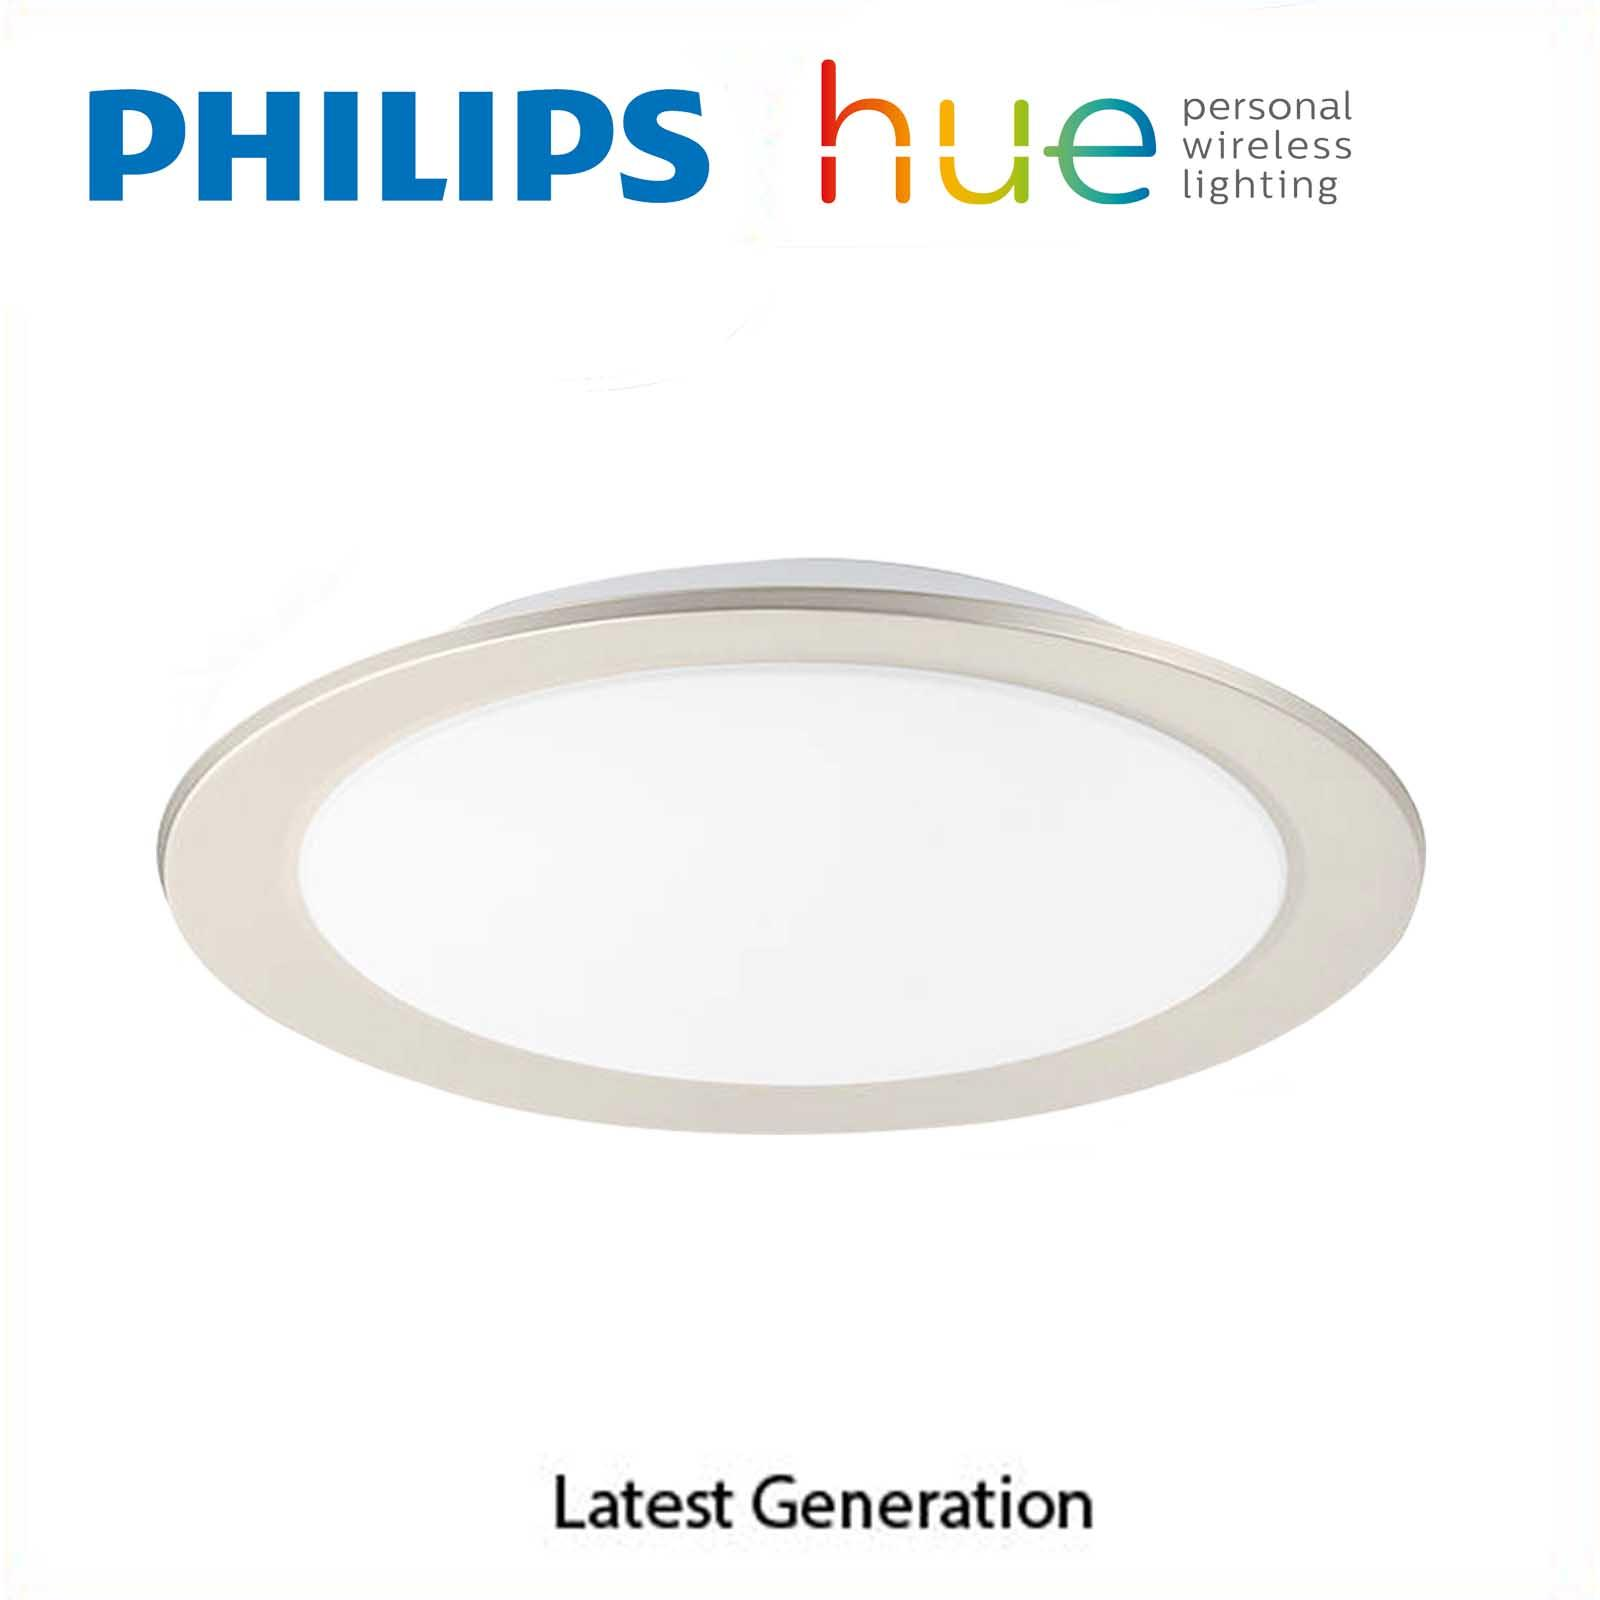 Philips 45037 MUSCARI Hue Ceiling White Ambiance (includes Hue Dimmer Switch x1)